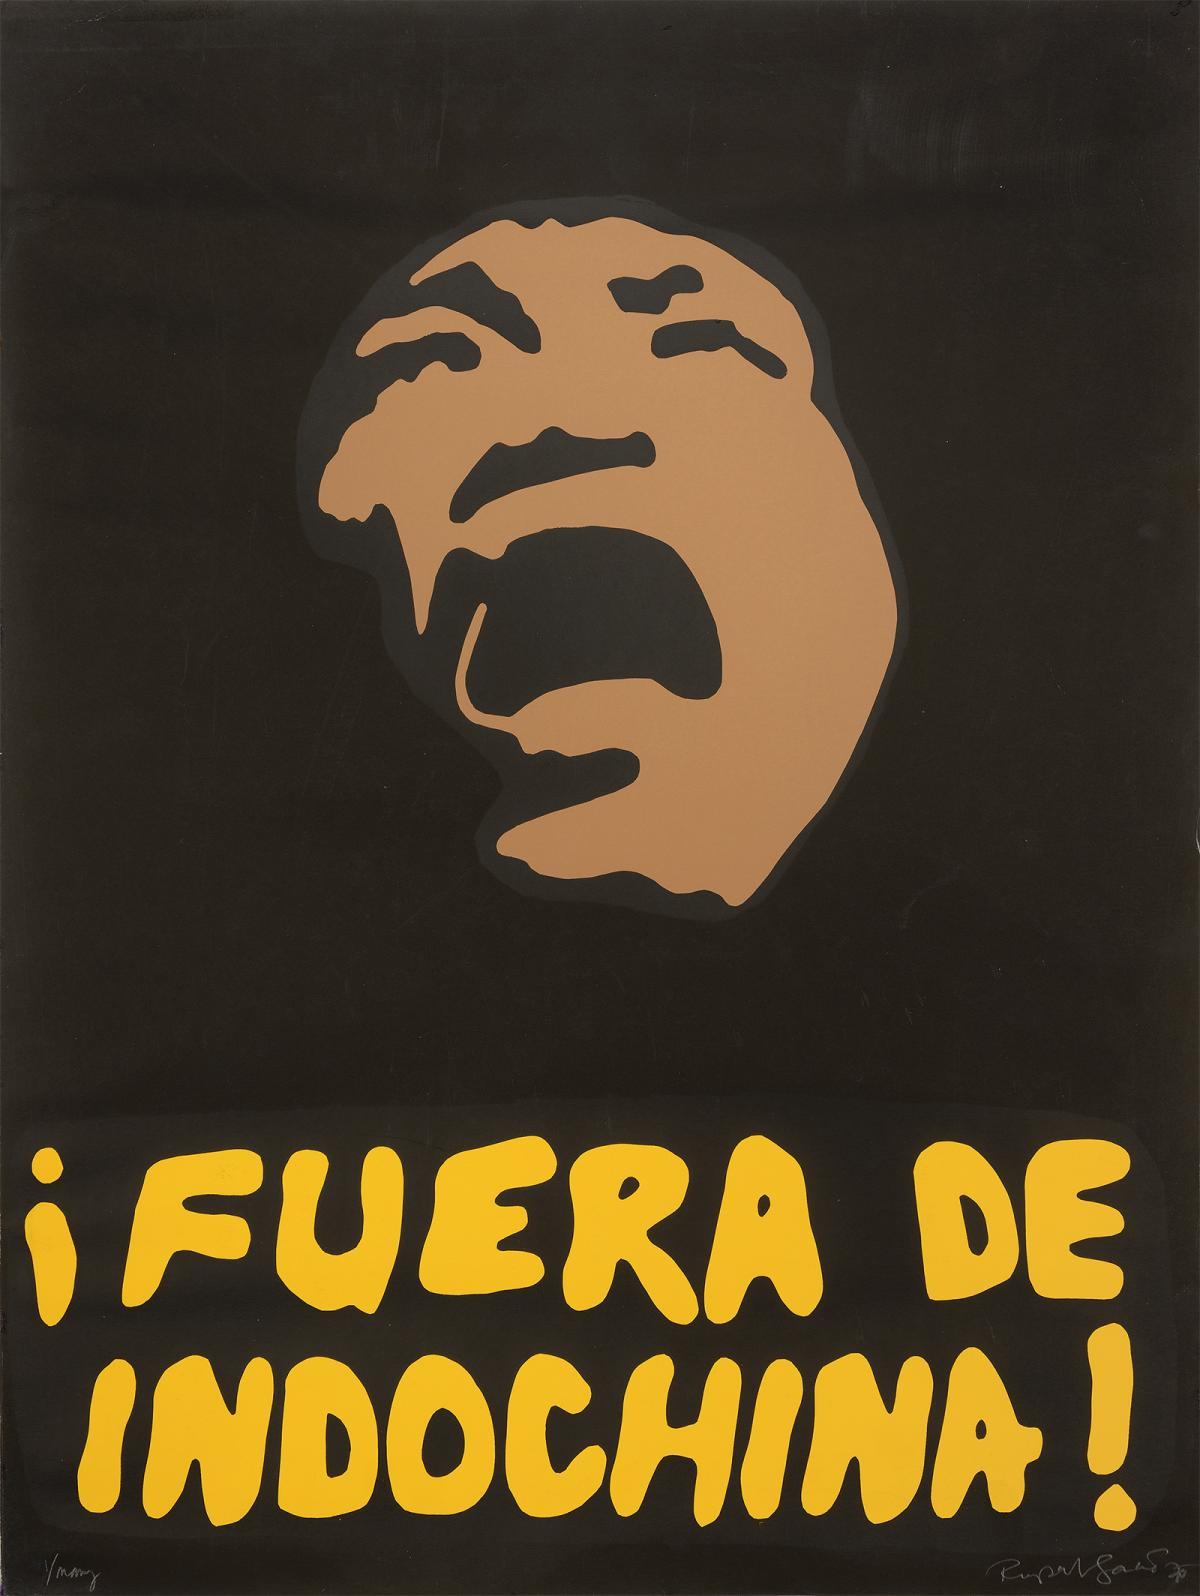 A screenprint of a man yelling with ¡Fuera de Indochina! printed underneath.